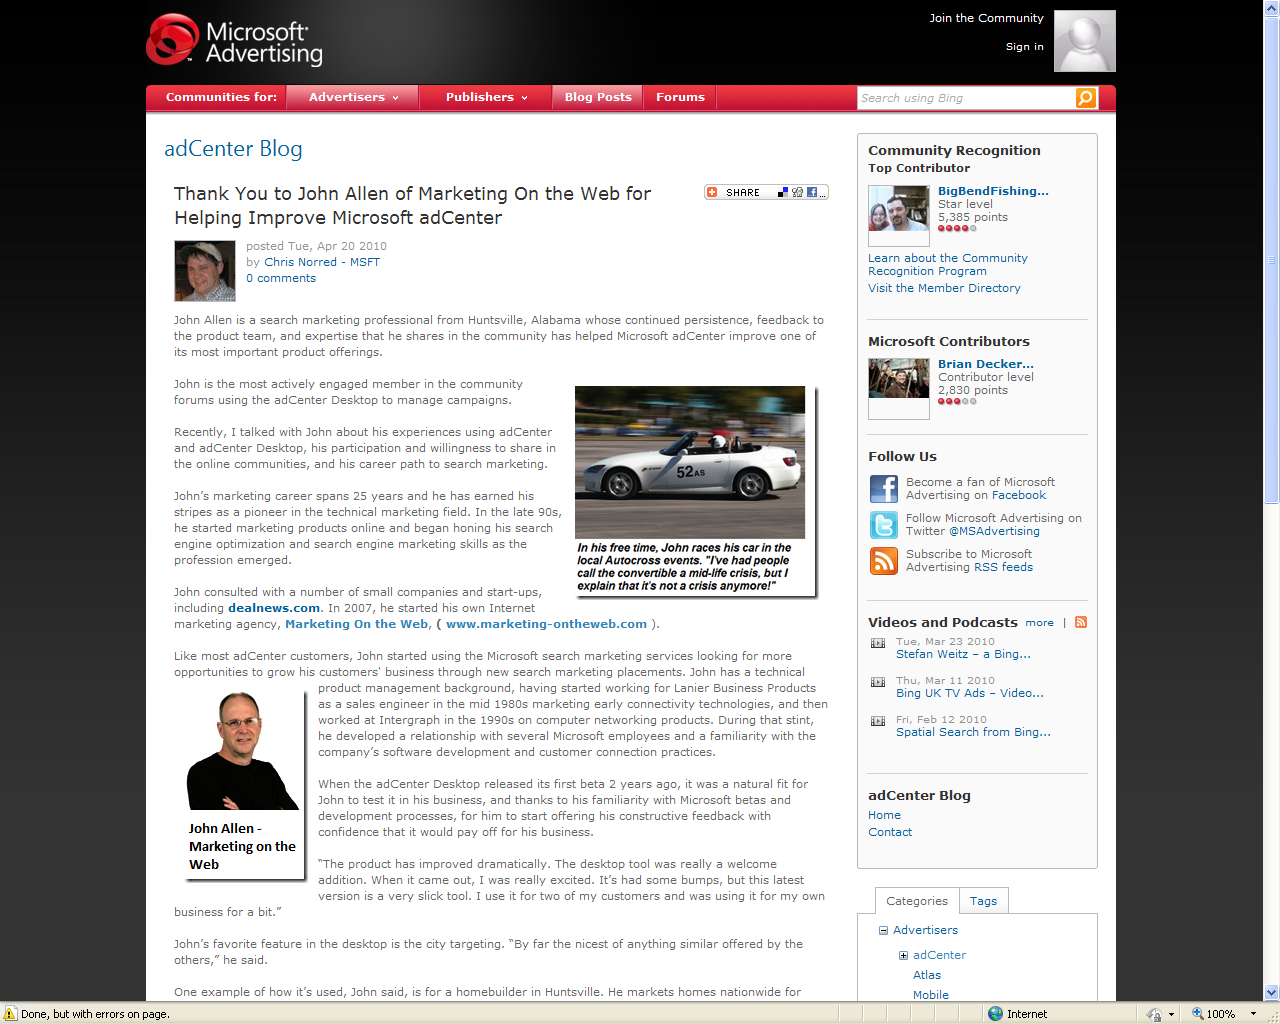 thank-you-to-john-allen-of-marketing-on-the-web-for-helping-improve-microsoft-adcenter